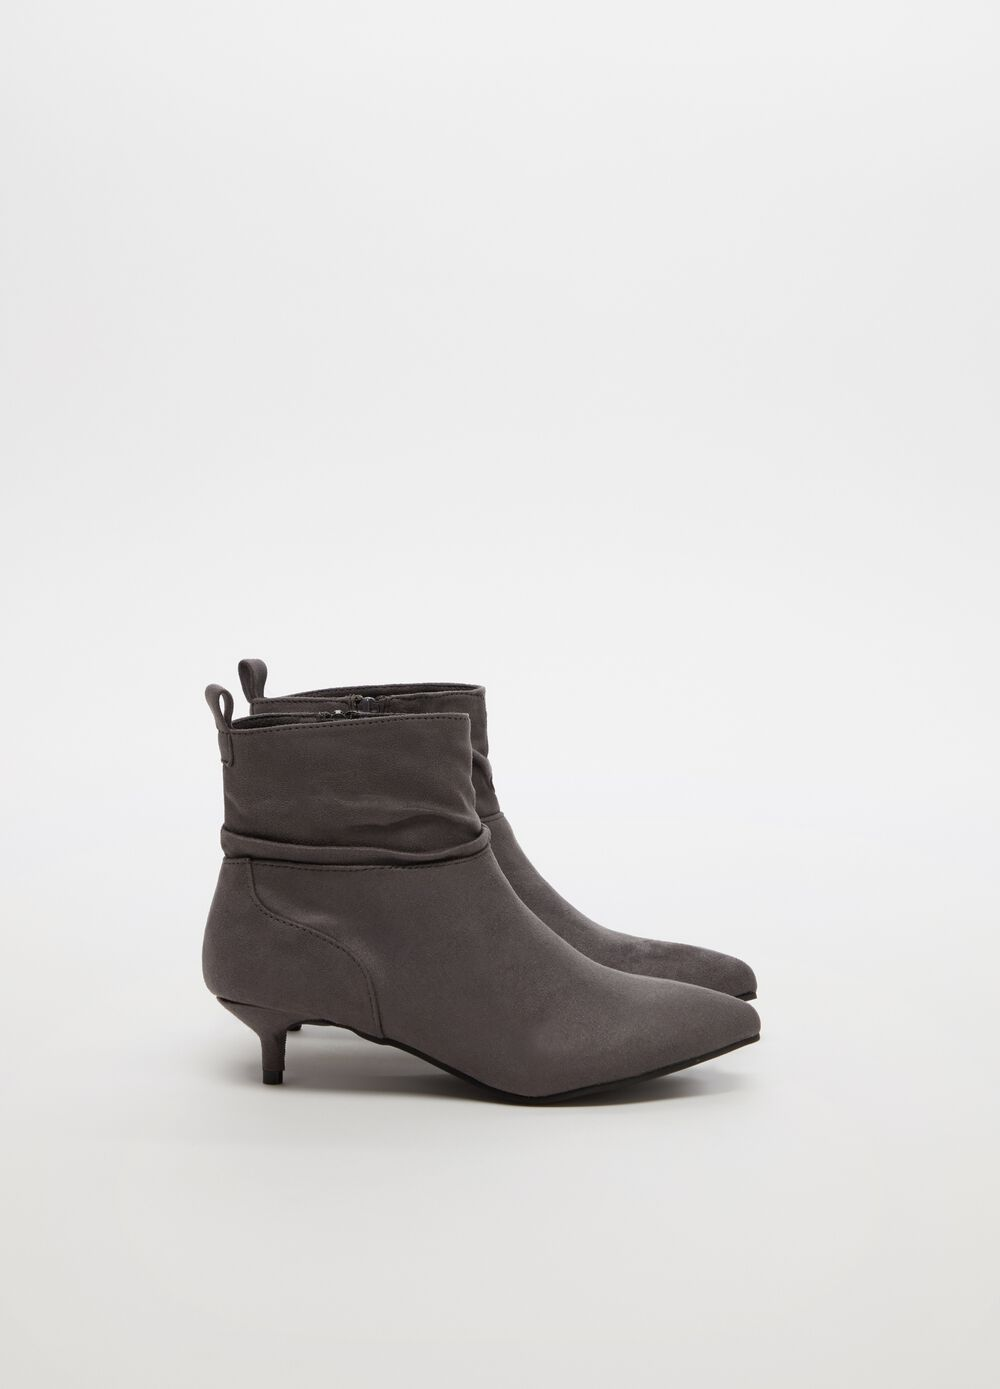 Microfibre ankle boots with slender heel